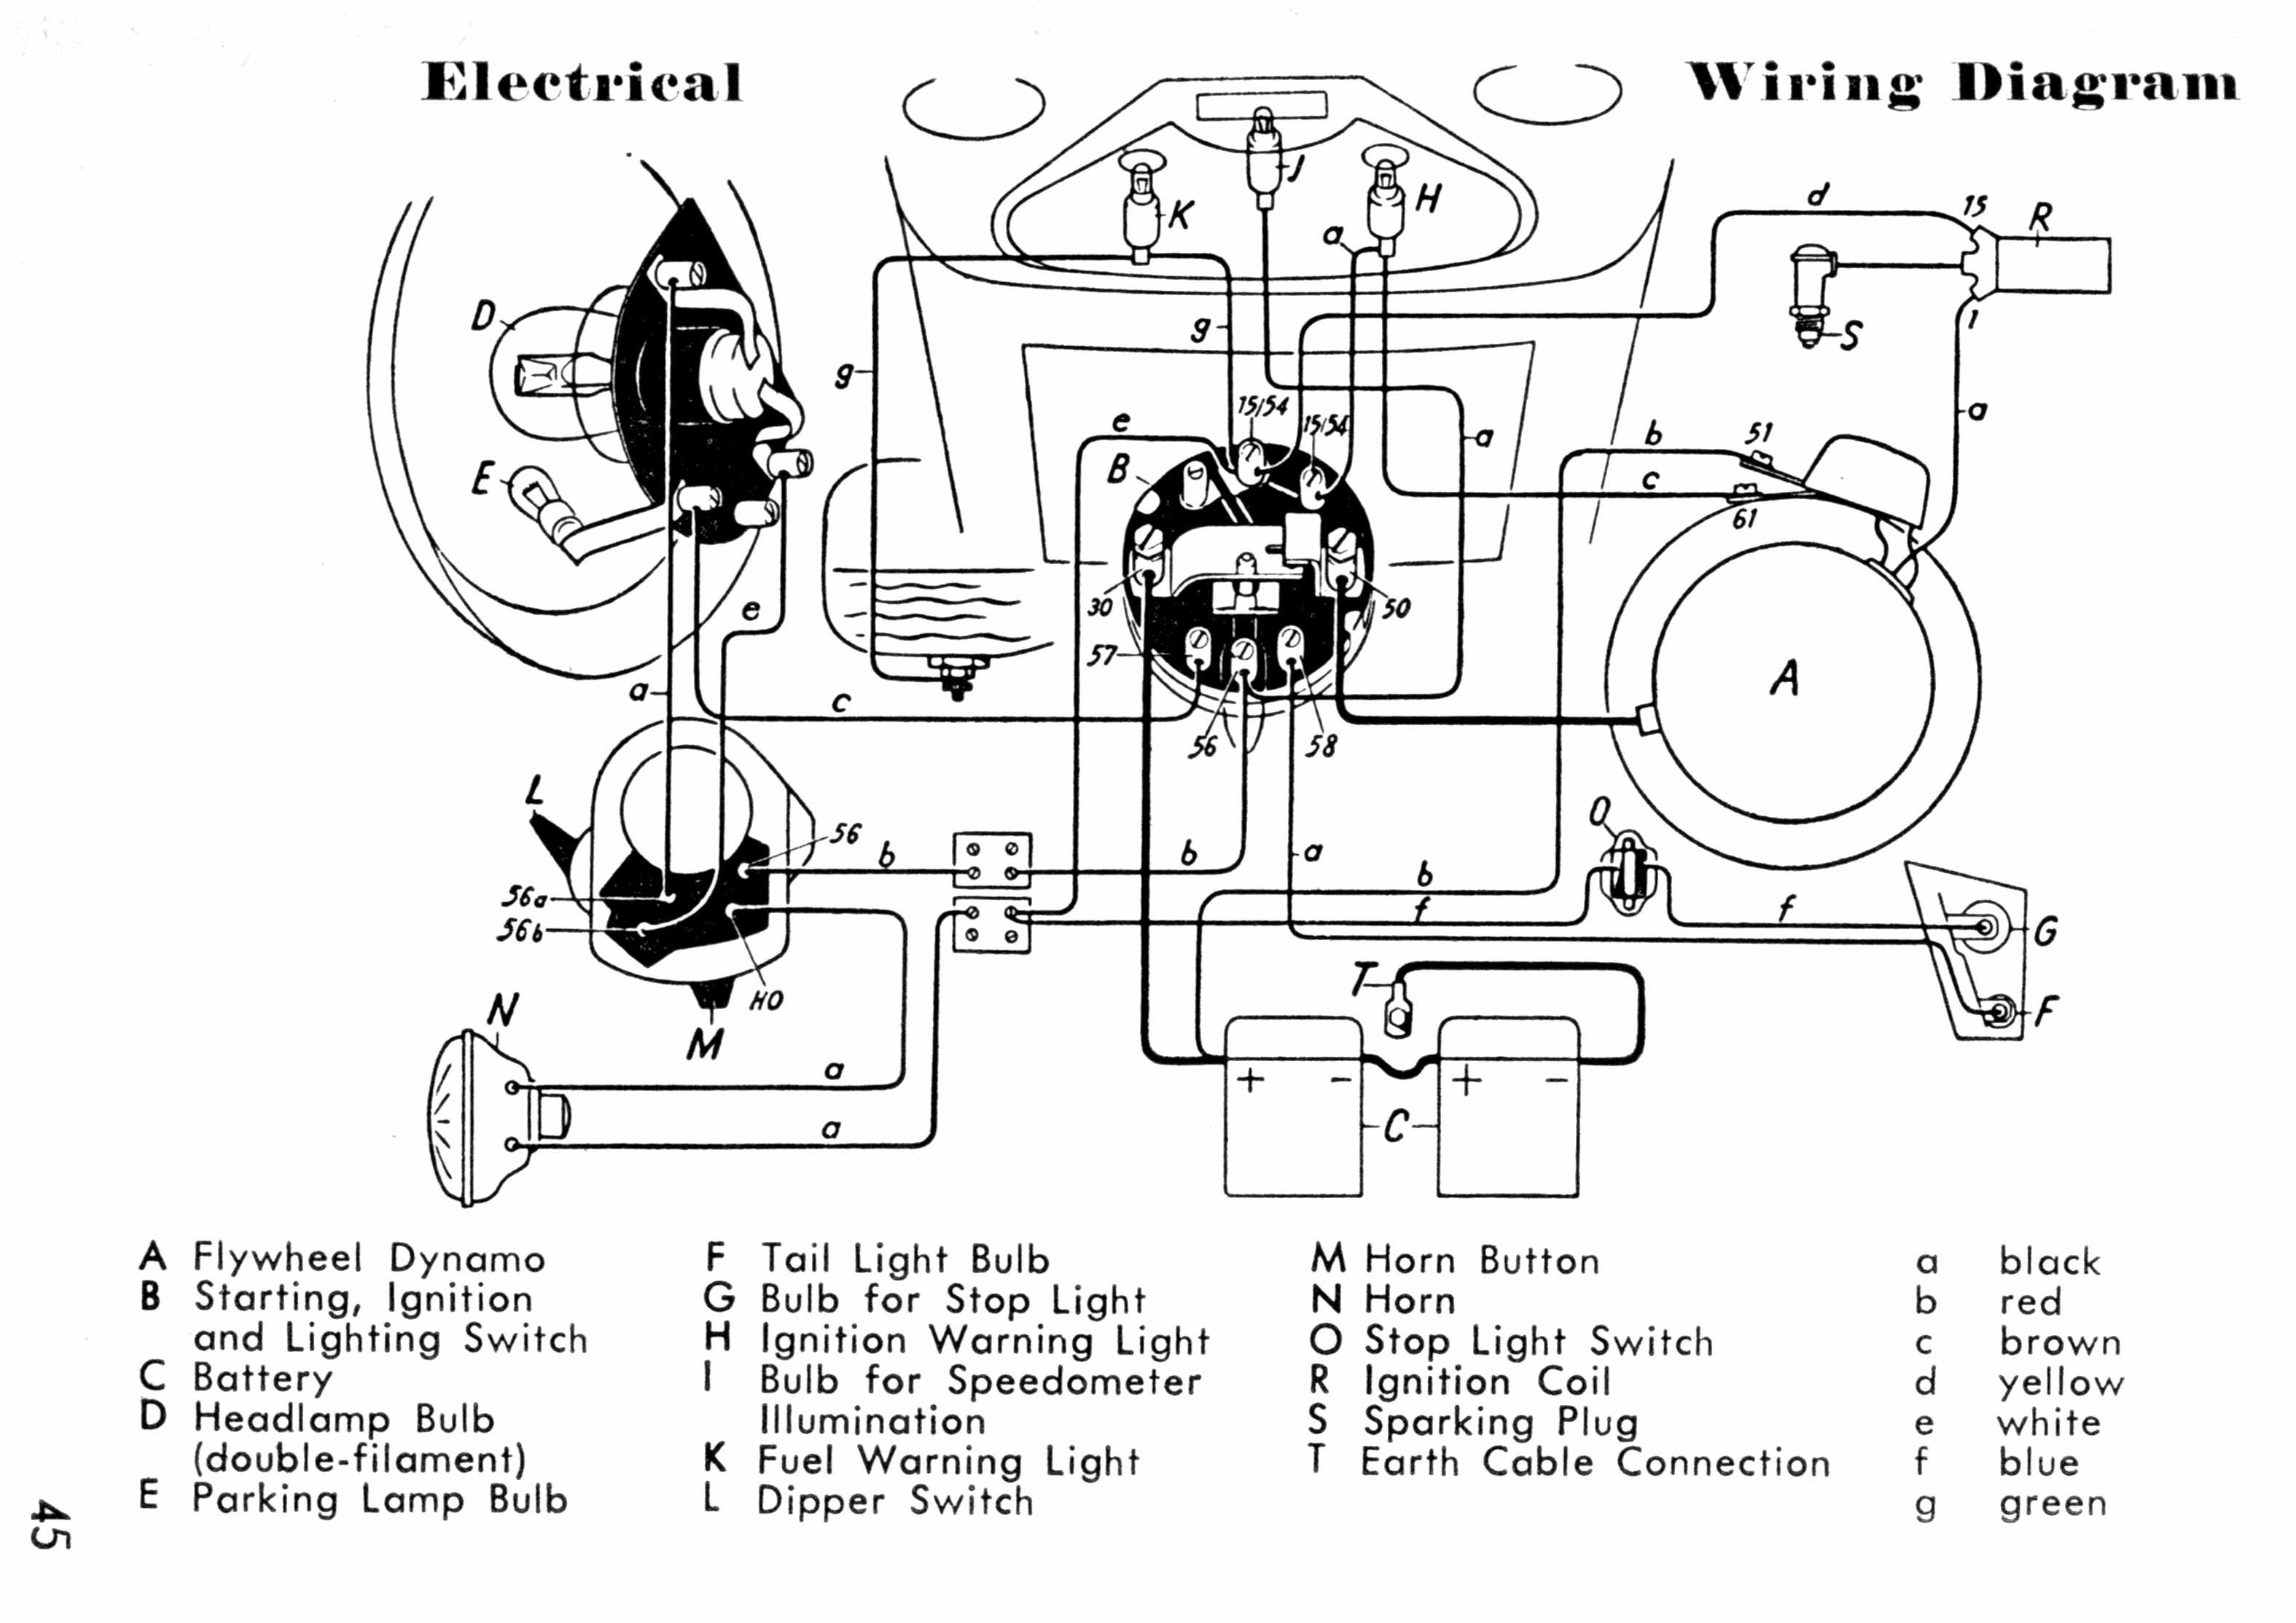 Schematic Electric Scooter Wiring Diagram Closet Pinterest Small Engine Cdi Ignition Schematics